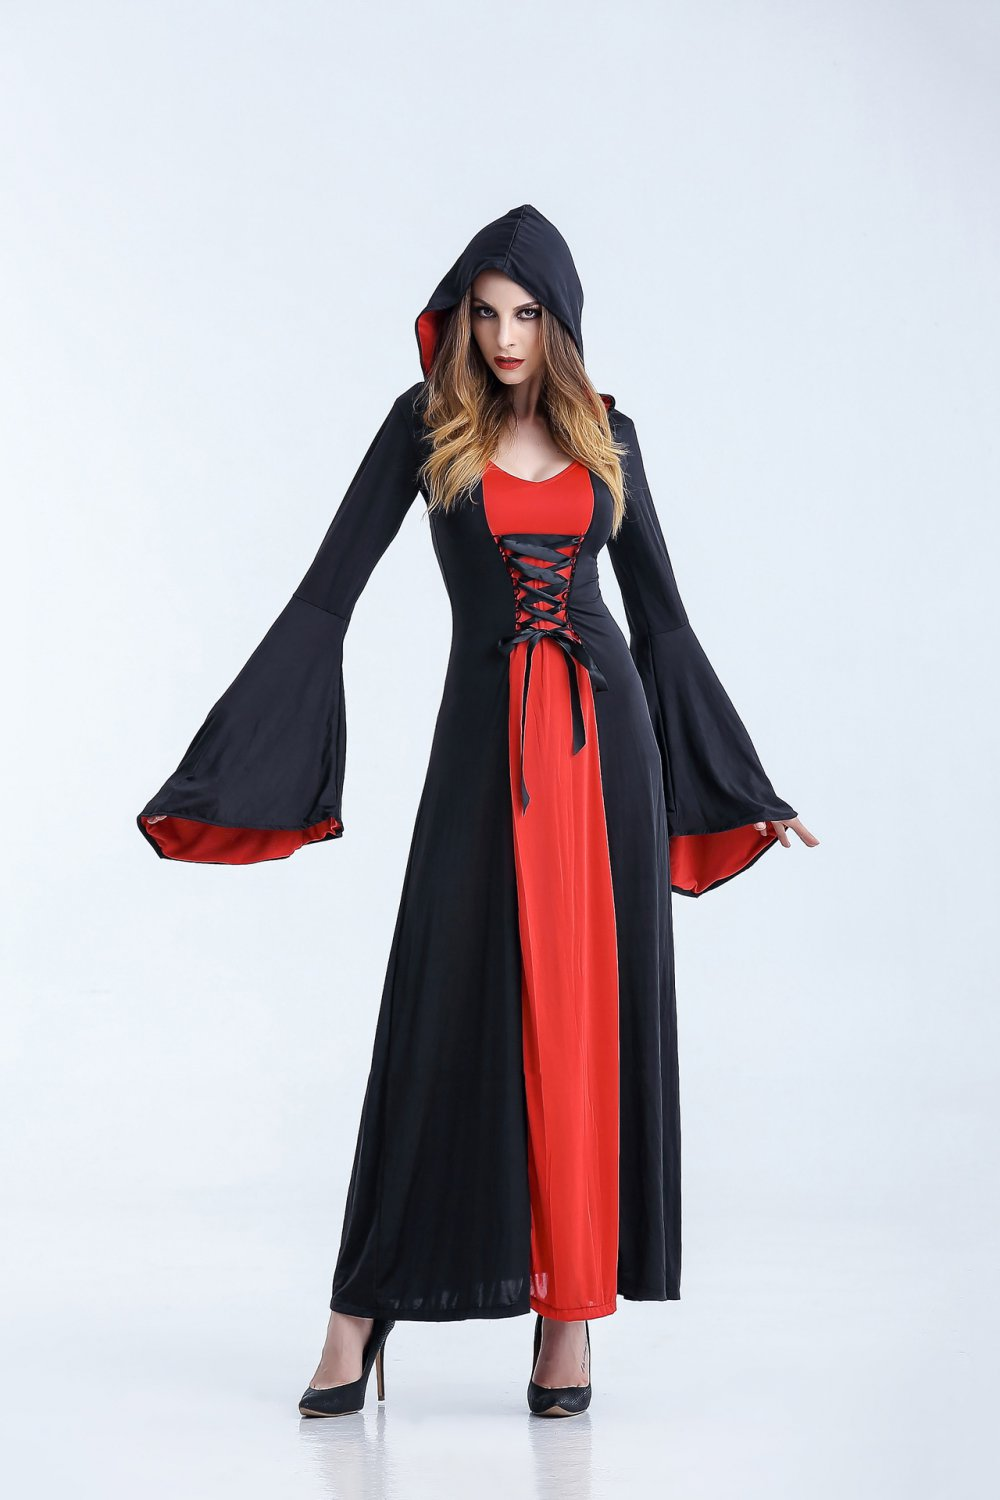 Women Medieval Dress Victorian Costume with Hoodie Halloween Vampire Cosplay Dresses